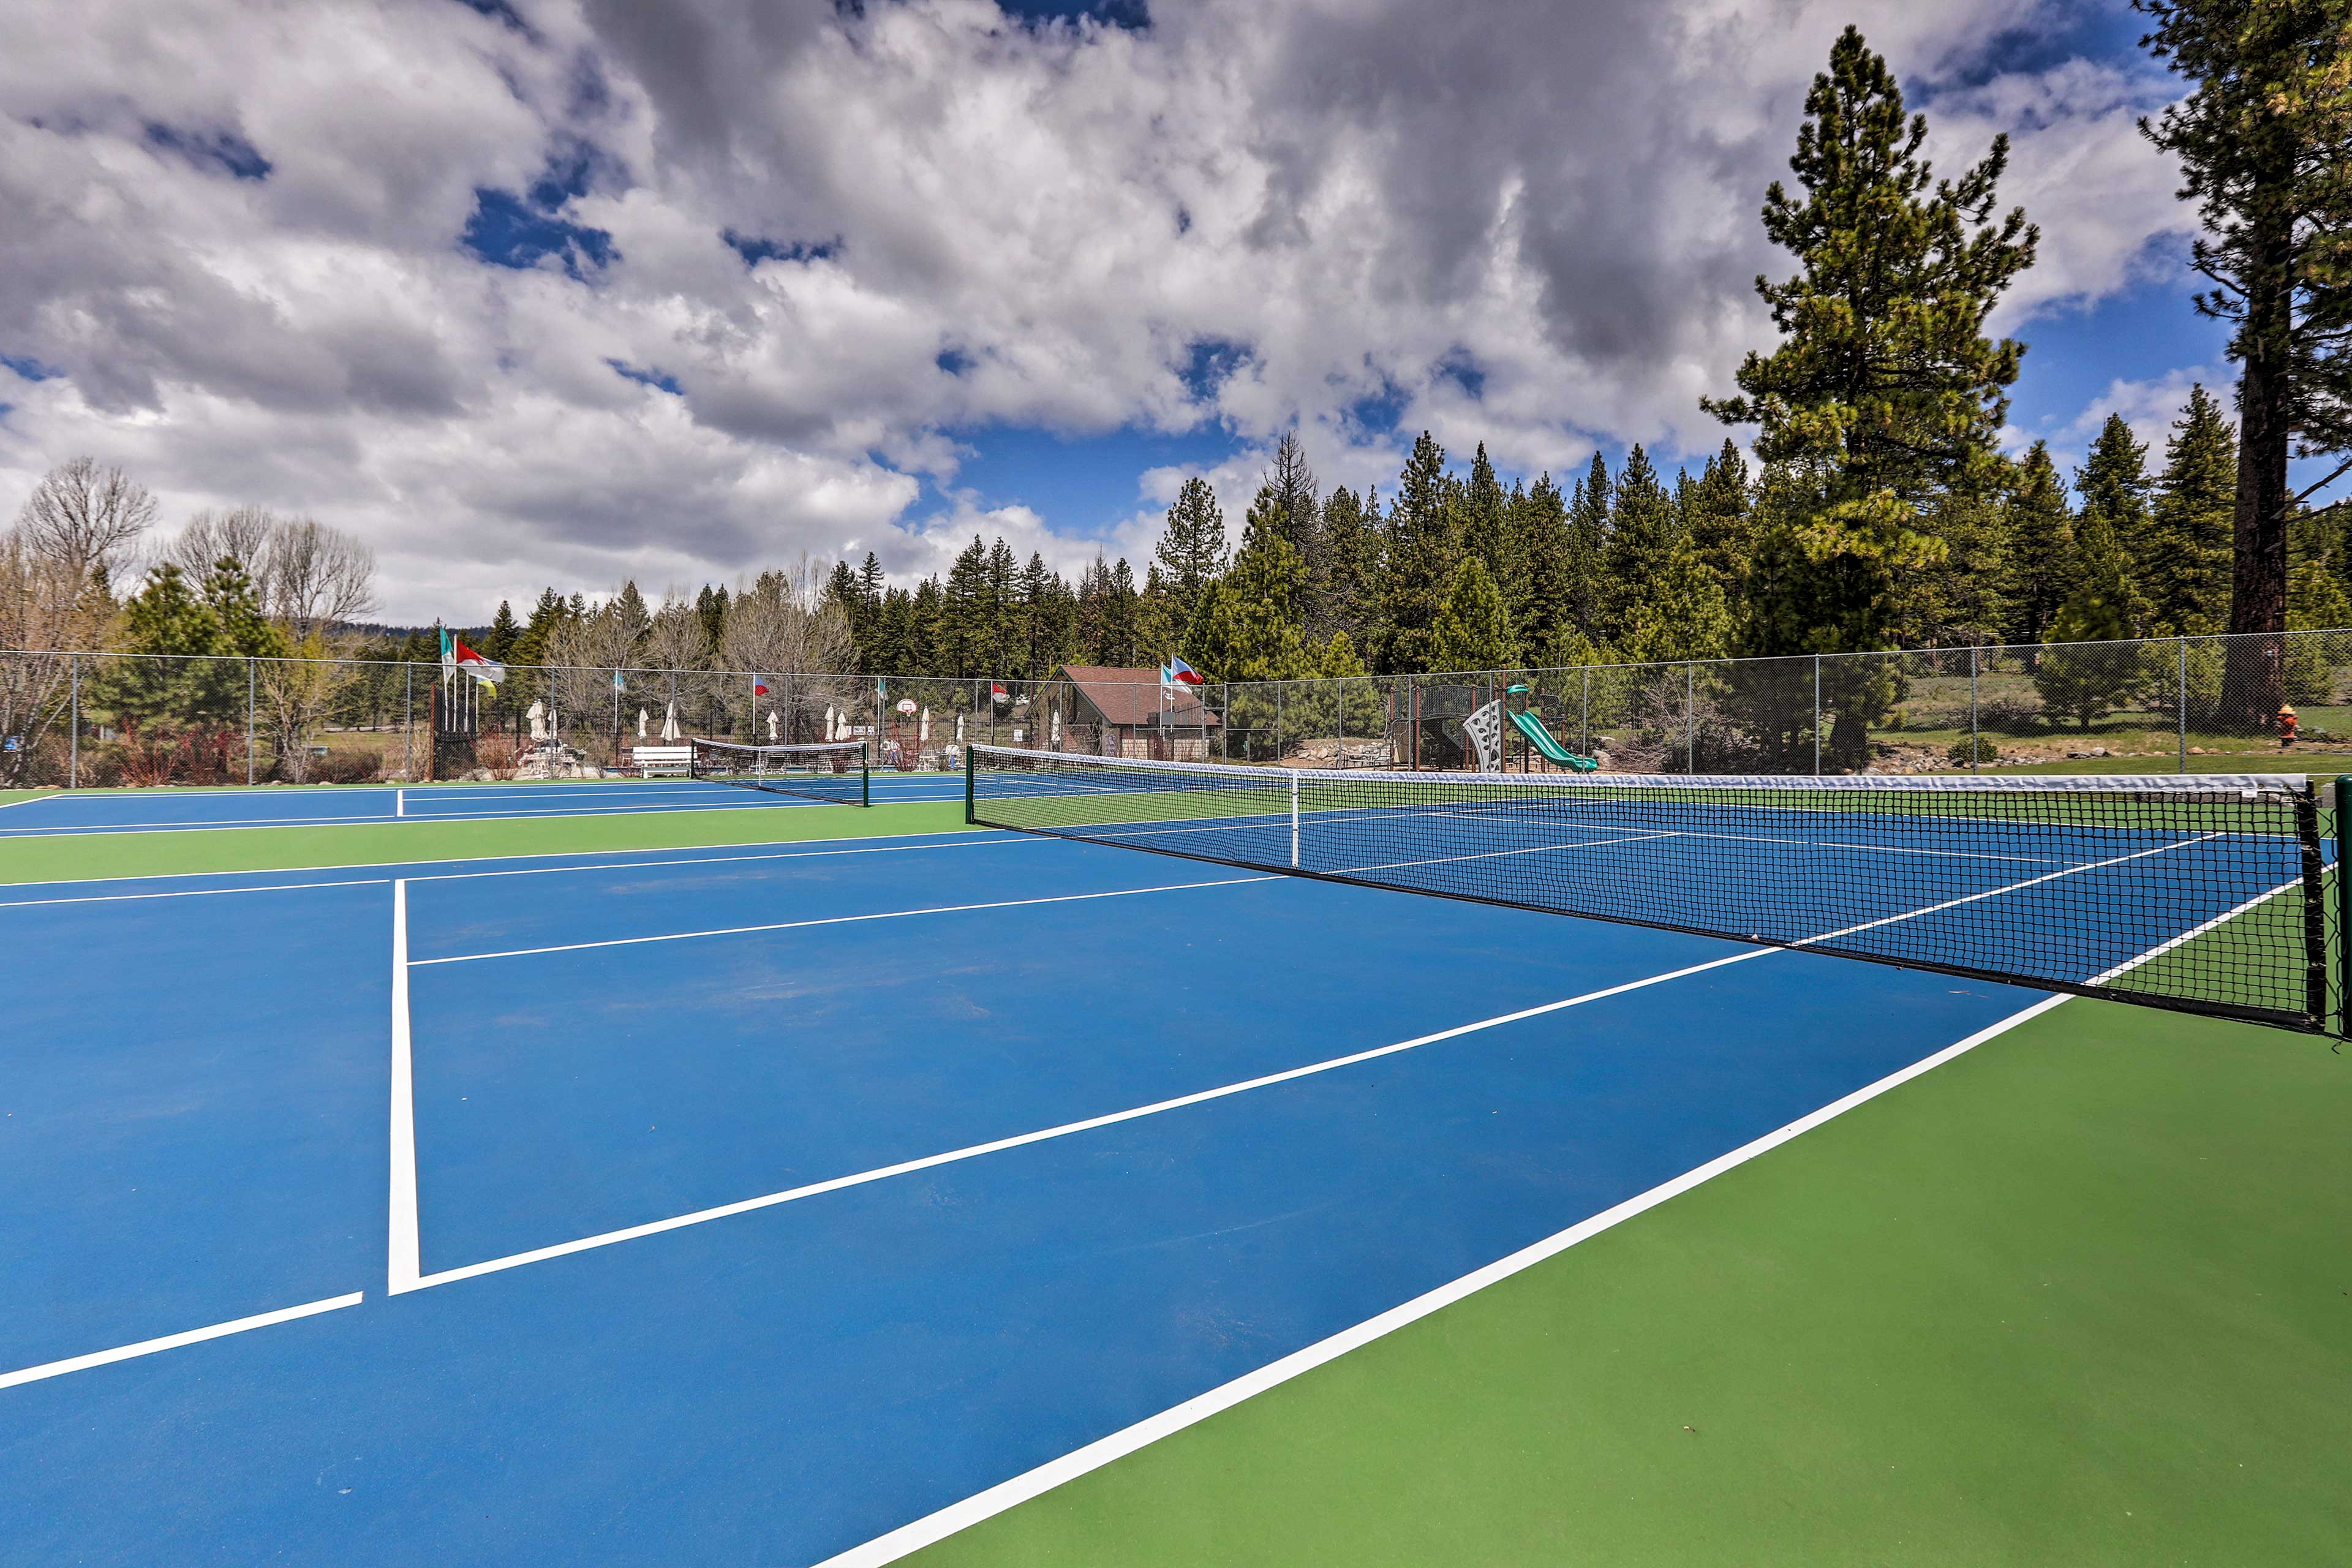 Play a few tennis matches during your stay.